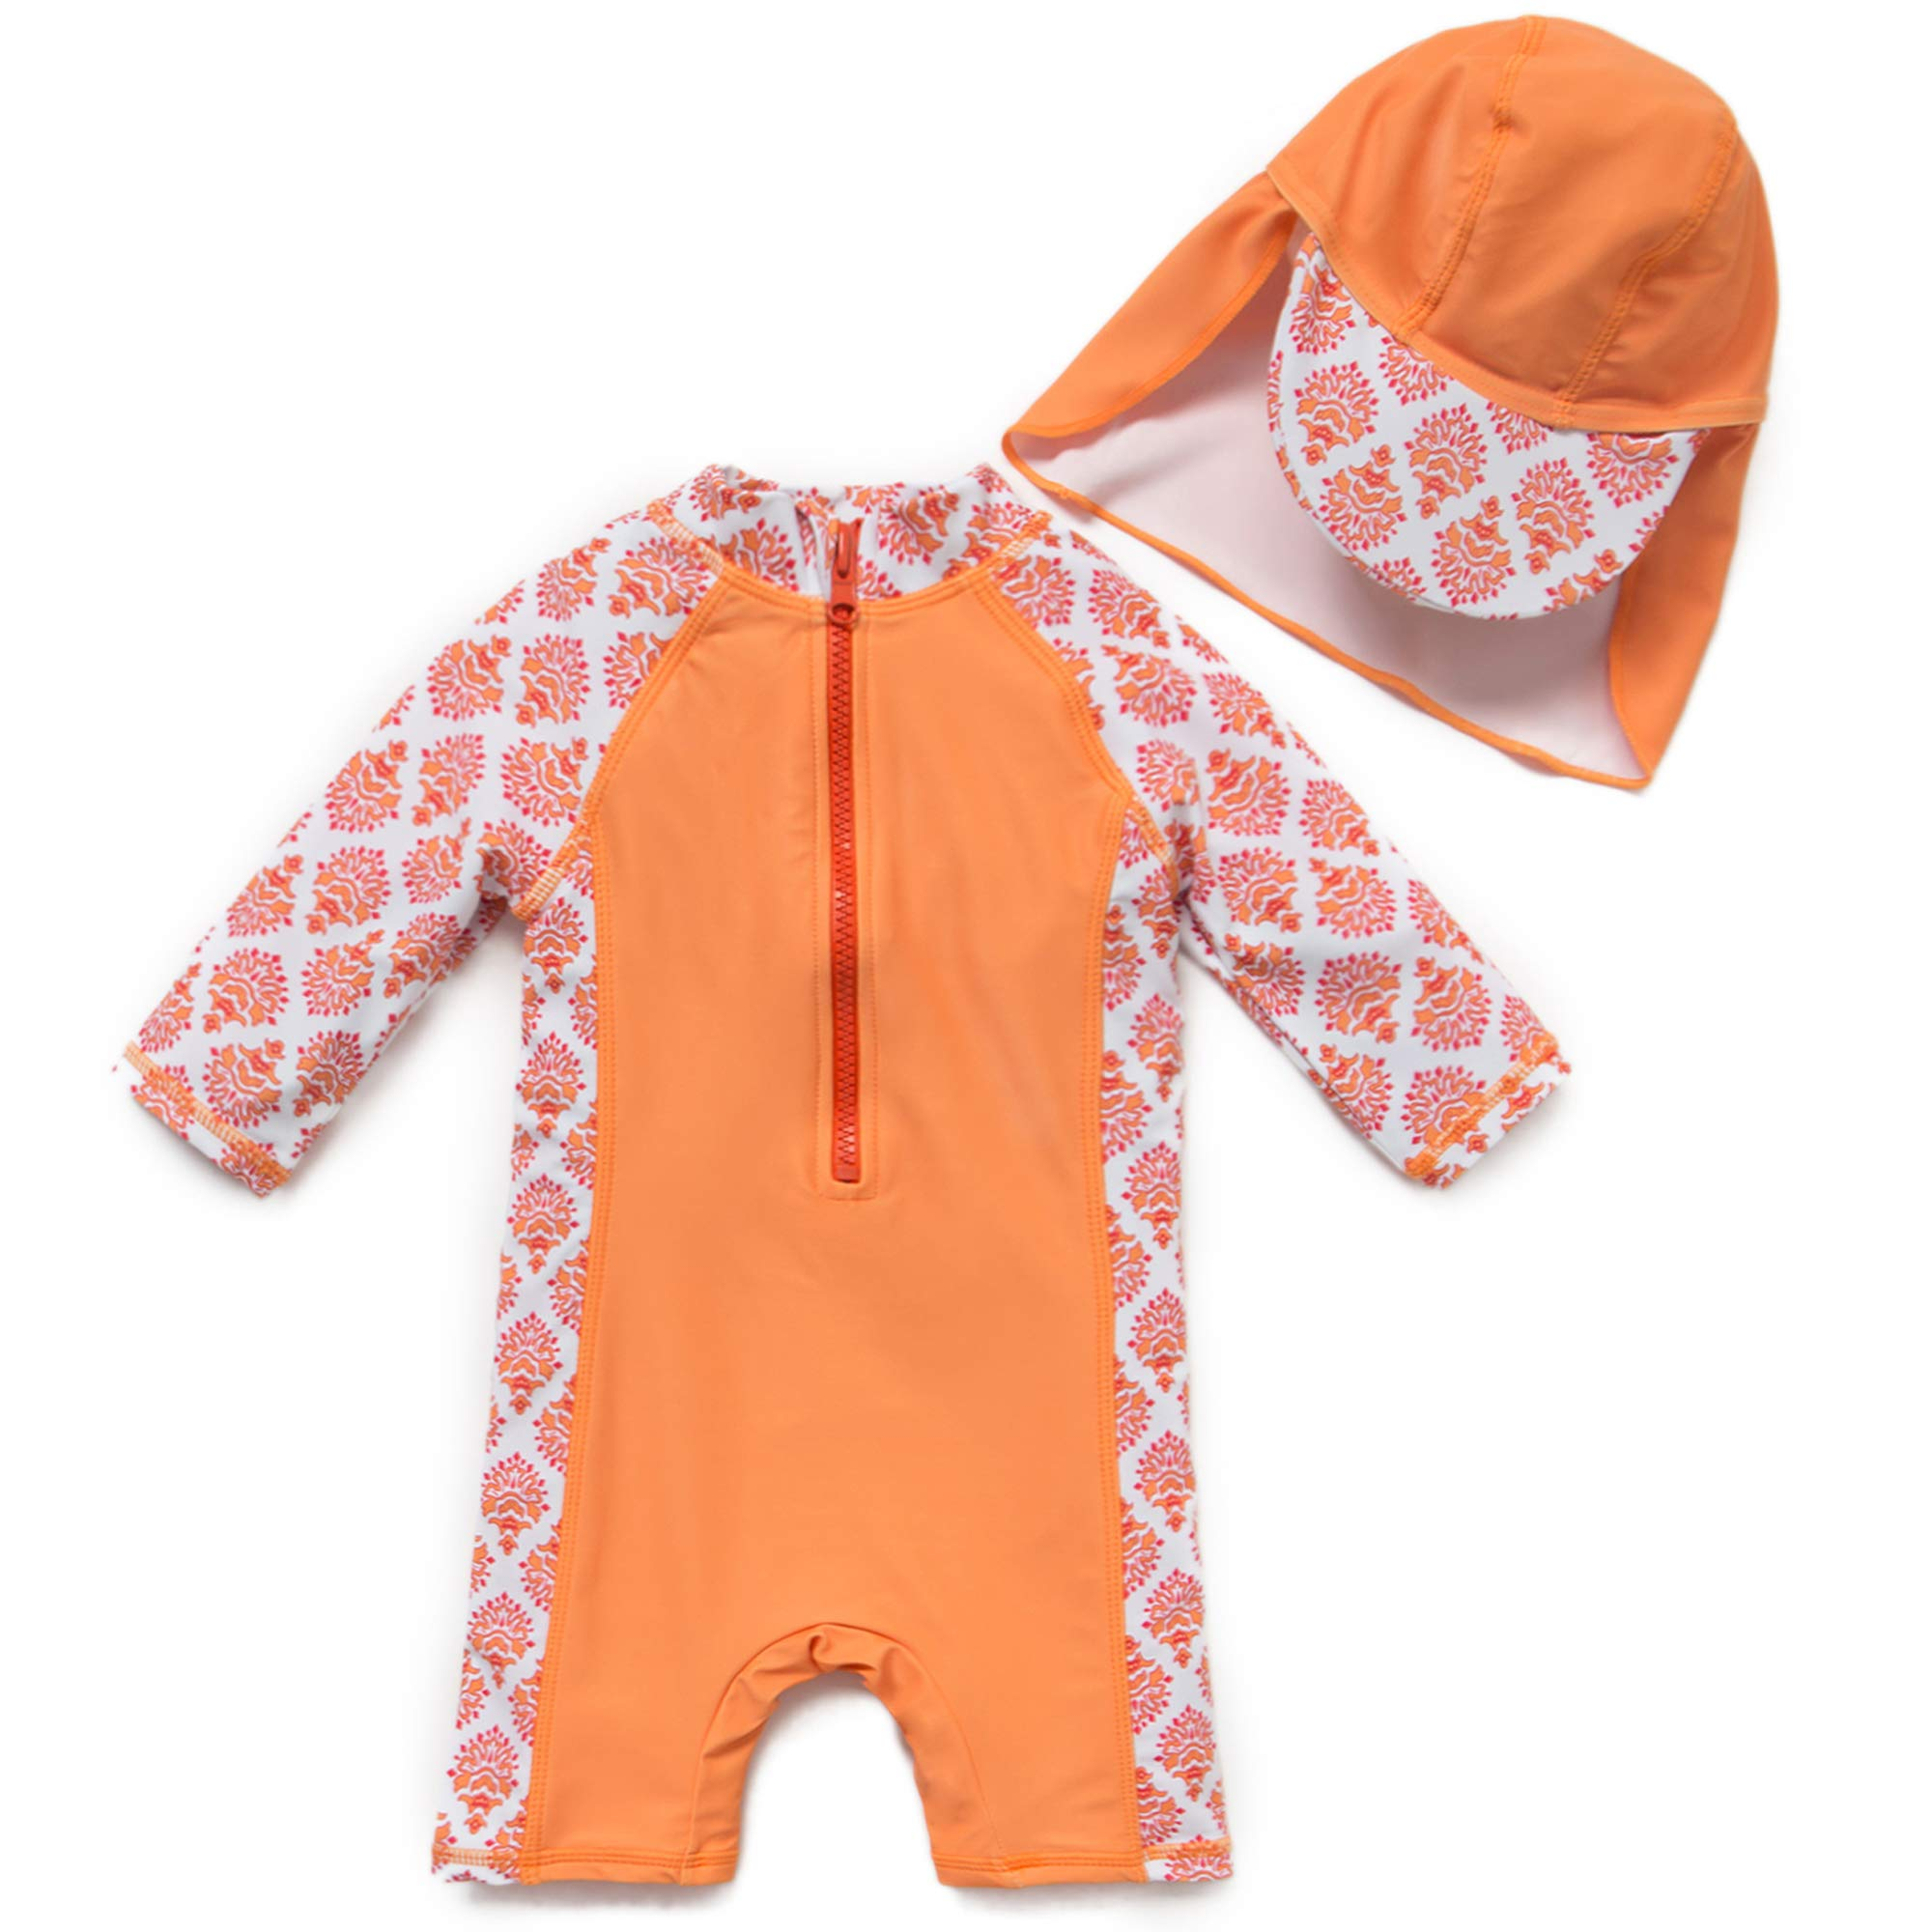 upandfast Kids One Piece Zip Sunsuit with Sun Hat UPF 50+ Sun Protection Baby Swimsuit (Orange(3/4 s), 3-6 Months) by upandfast